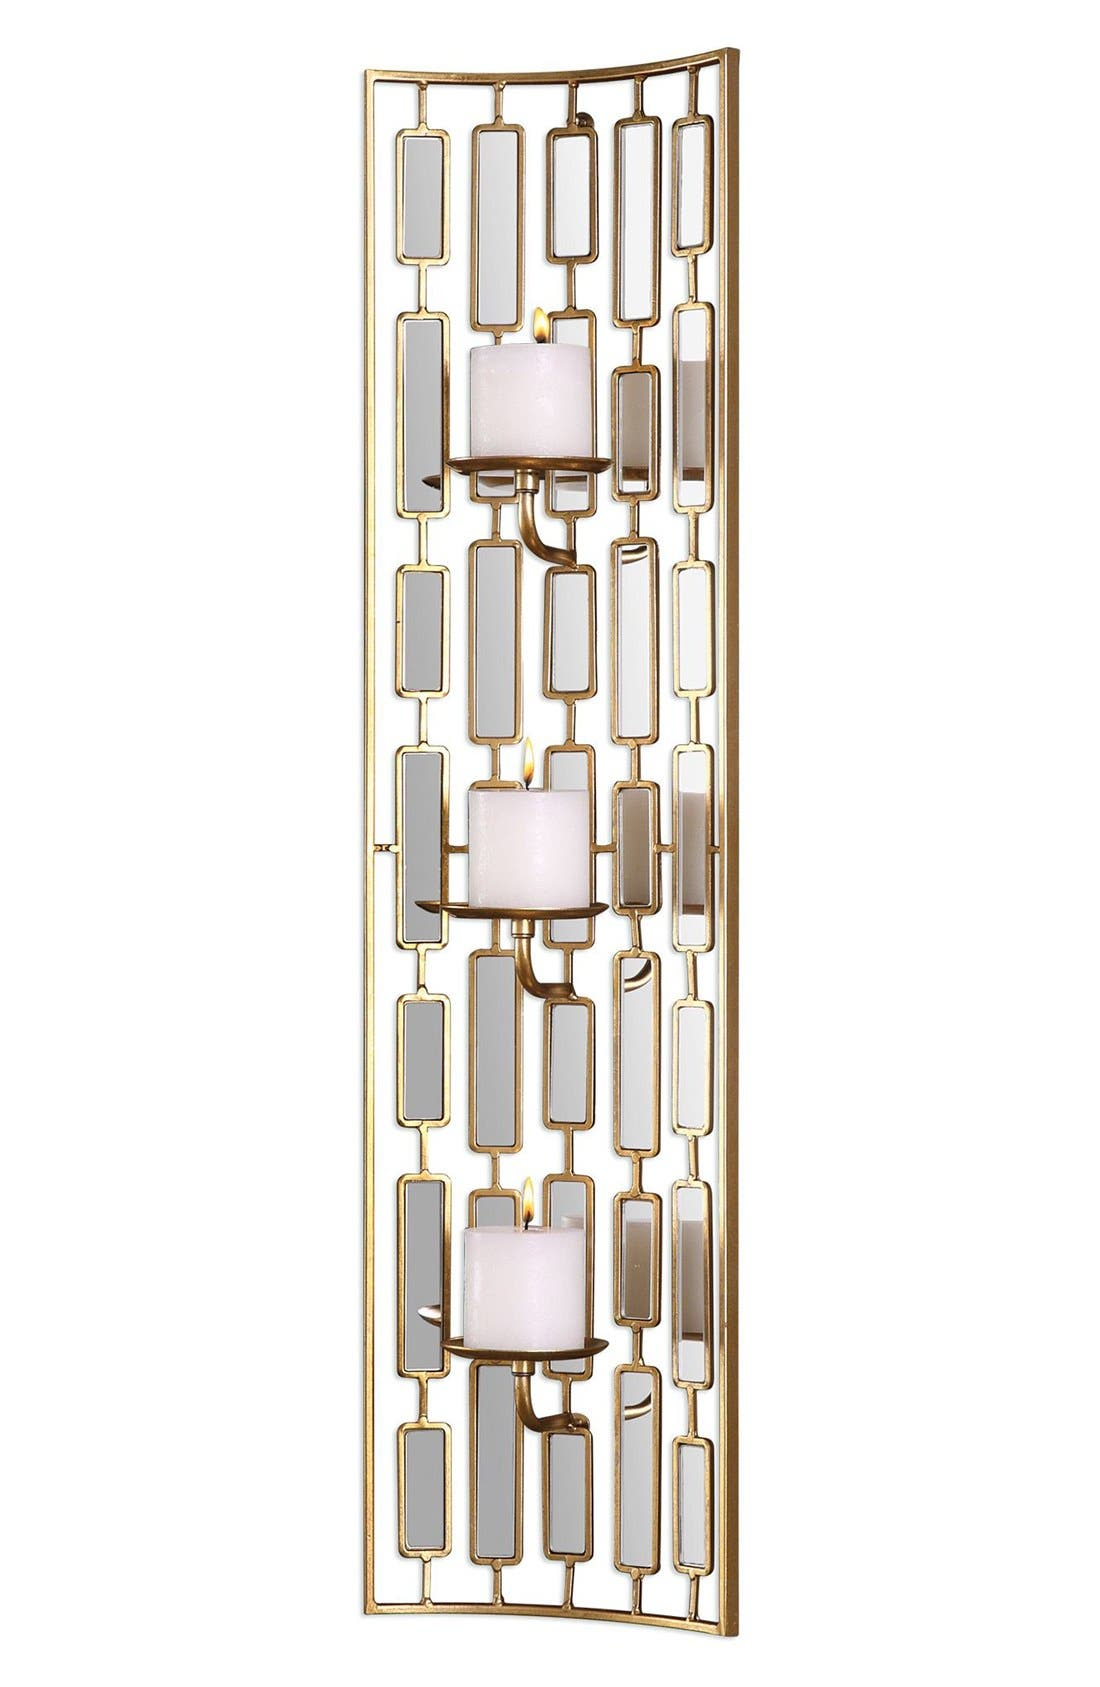 Mirrored Candleholder Wall Sconce,                         Main,                         color, Metallic Gold